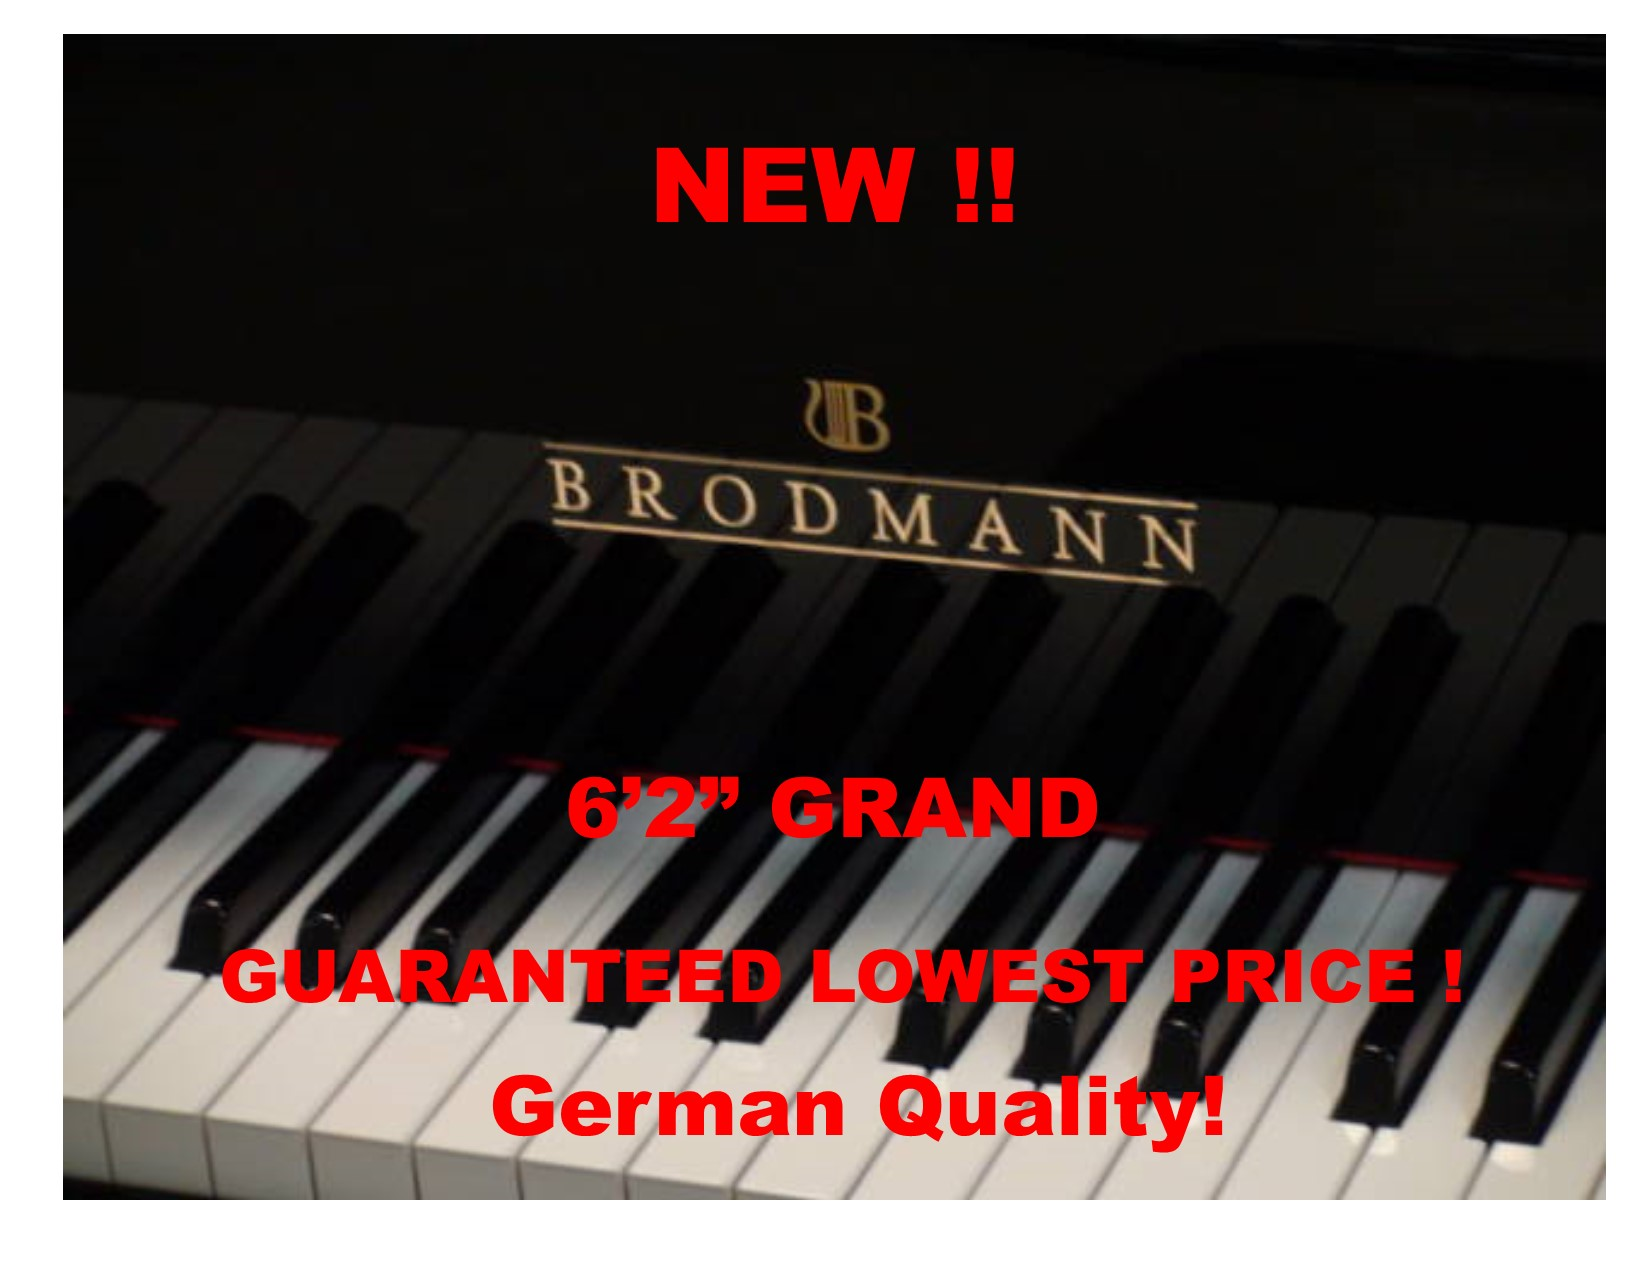 "13991<br><font color=black><b>NEW BRODMANN </b></font> 6'2″ Grand ""German Built""<br><font color=blue><b>Click Picture for ""Live Video </b></font>""<br><font color=""red""><b>Guaranteed Lowest Price !</b></font>"